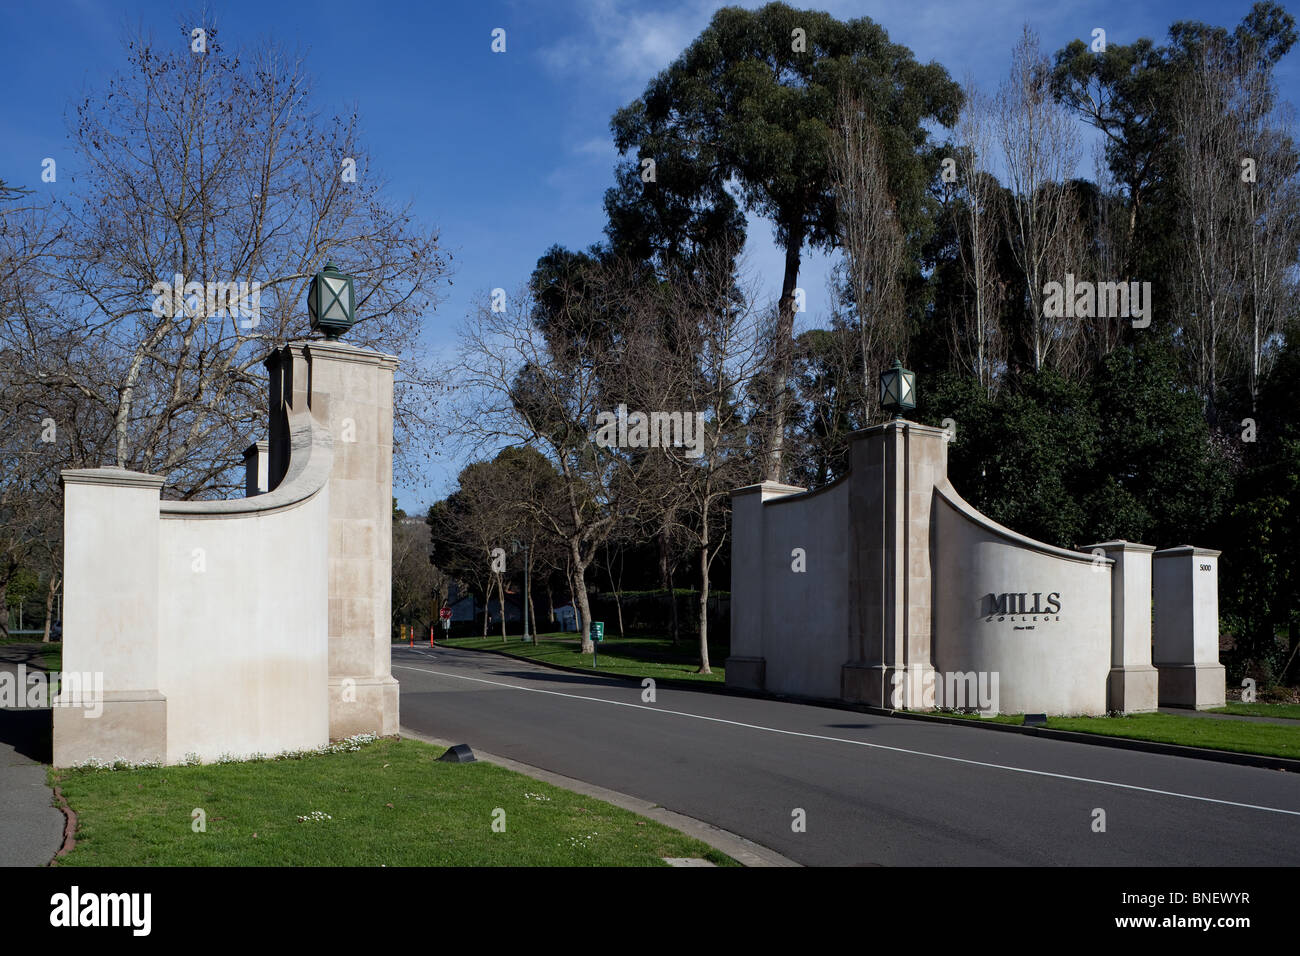 Entrance of Mills College in Oakland CA Stock Photo, Royalty Free ...